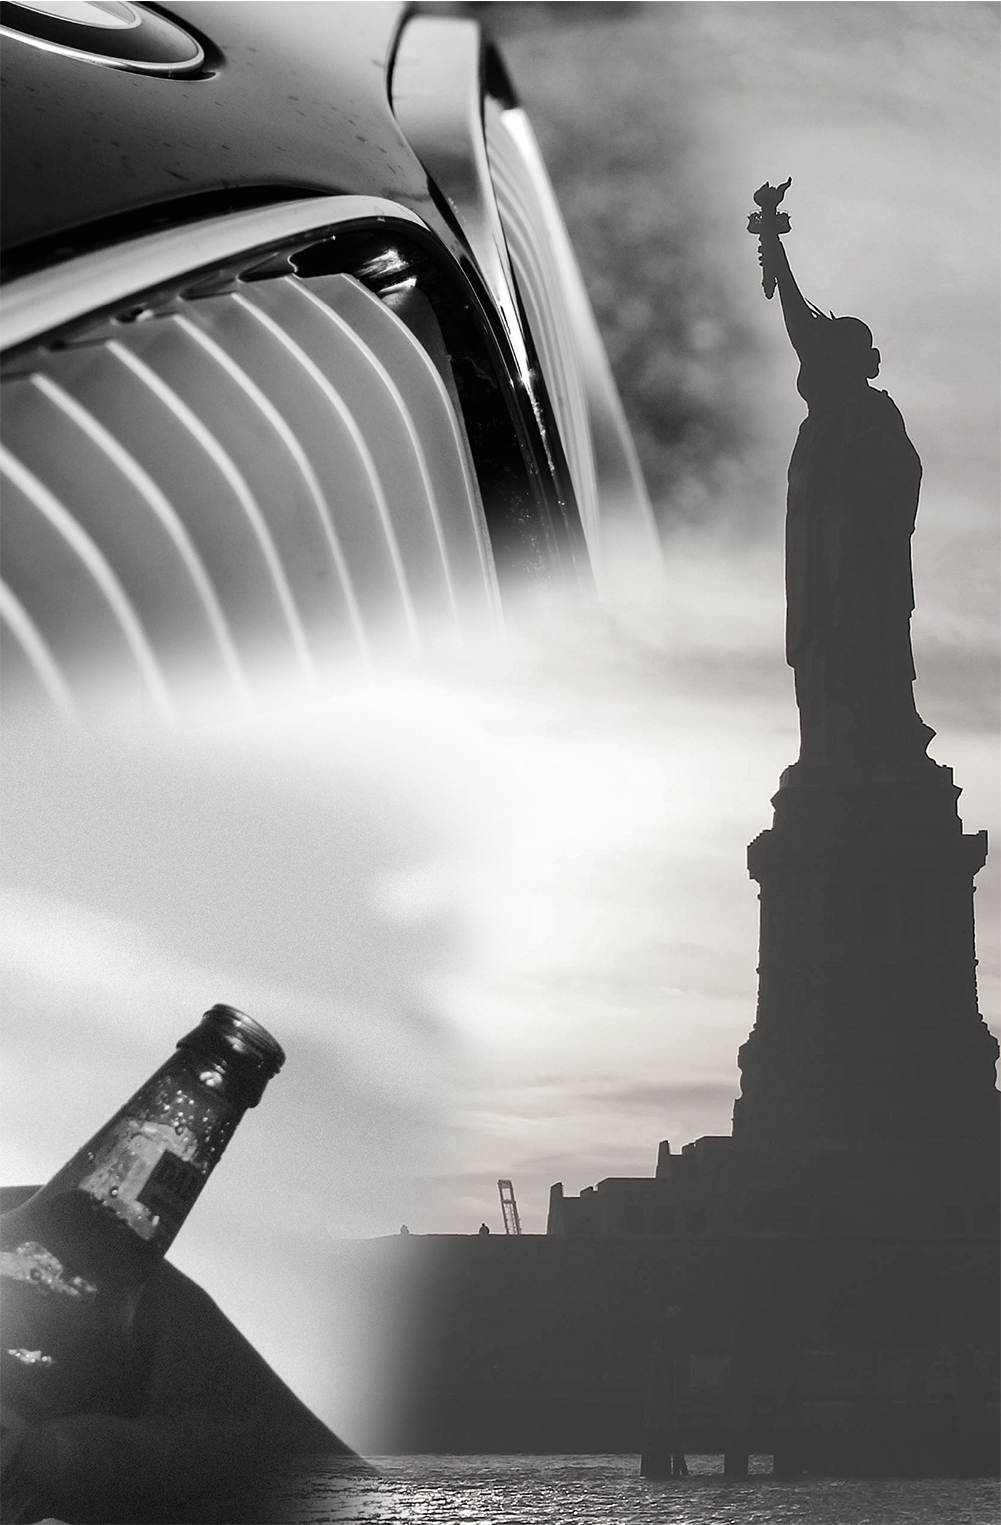 Photo montage of car, Statue of Liberty and hands holding beer bottles